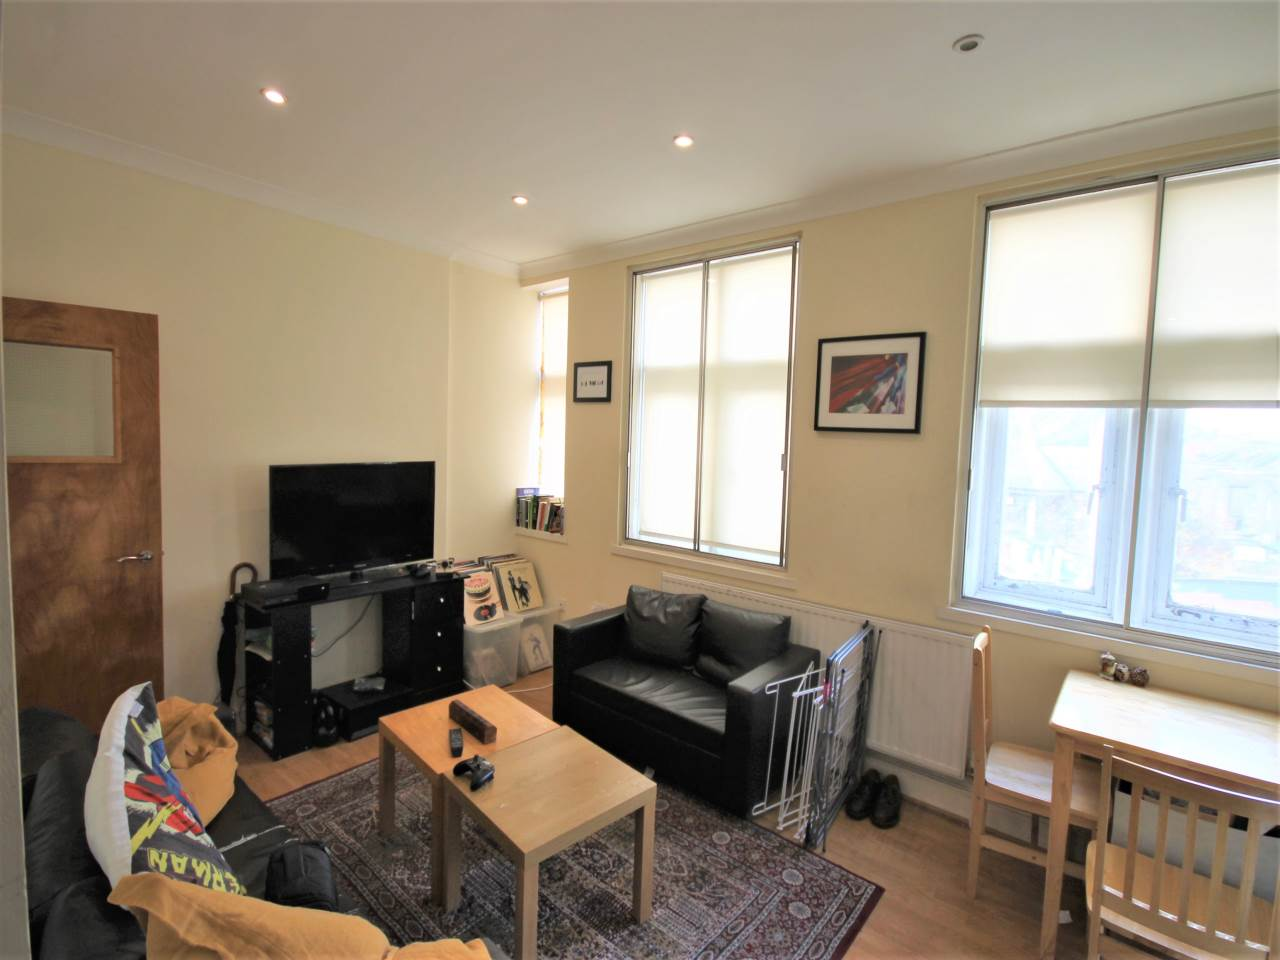 2 bed flat to rent in Priory Avenue, Walthamstow - Property Image 1